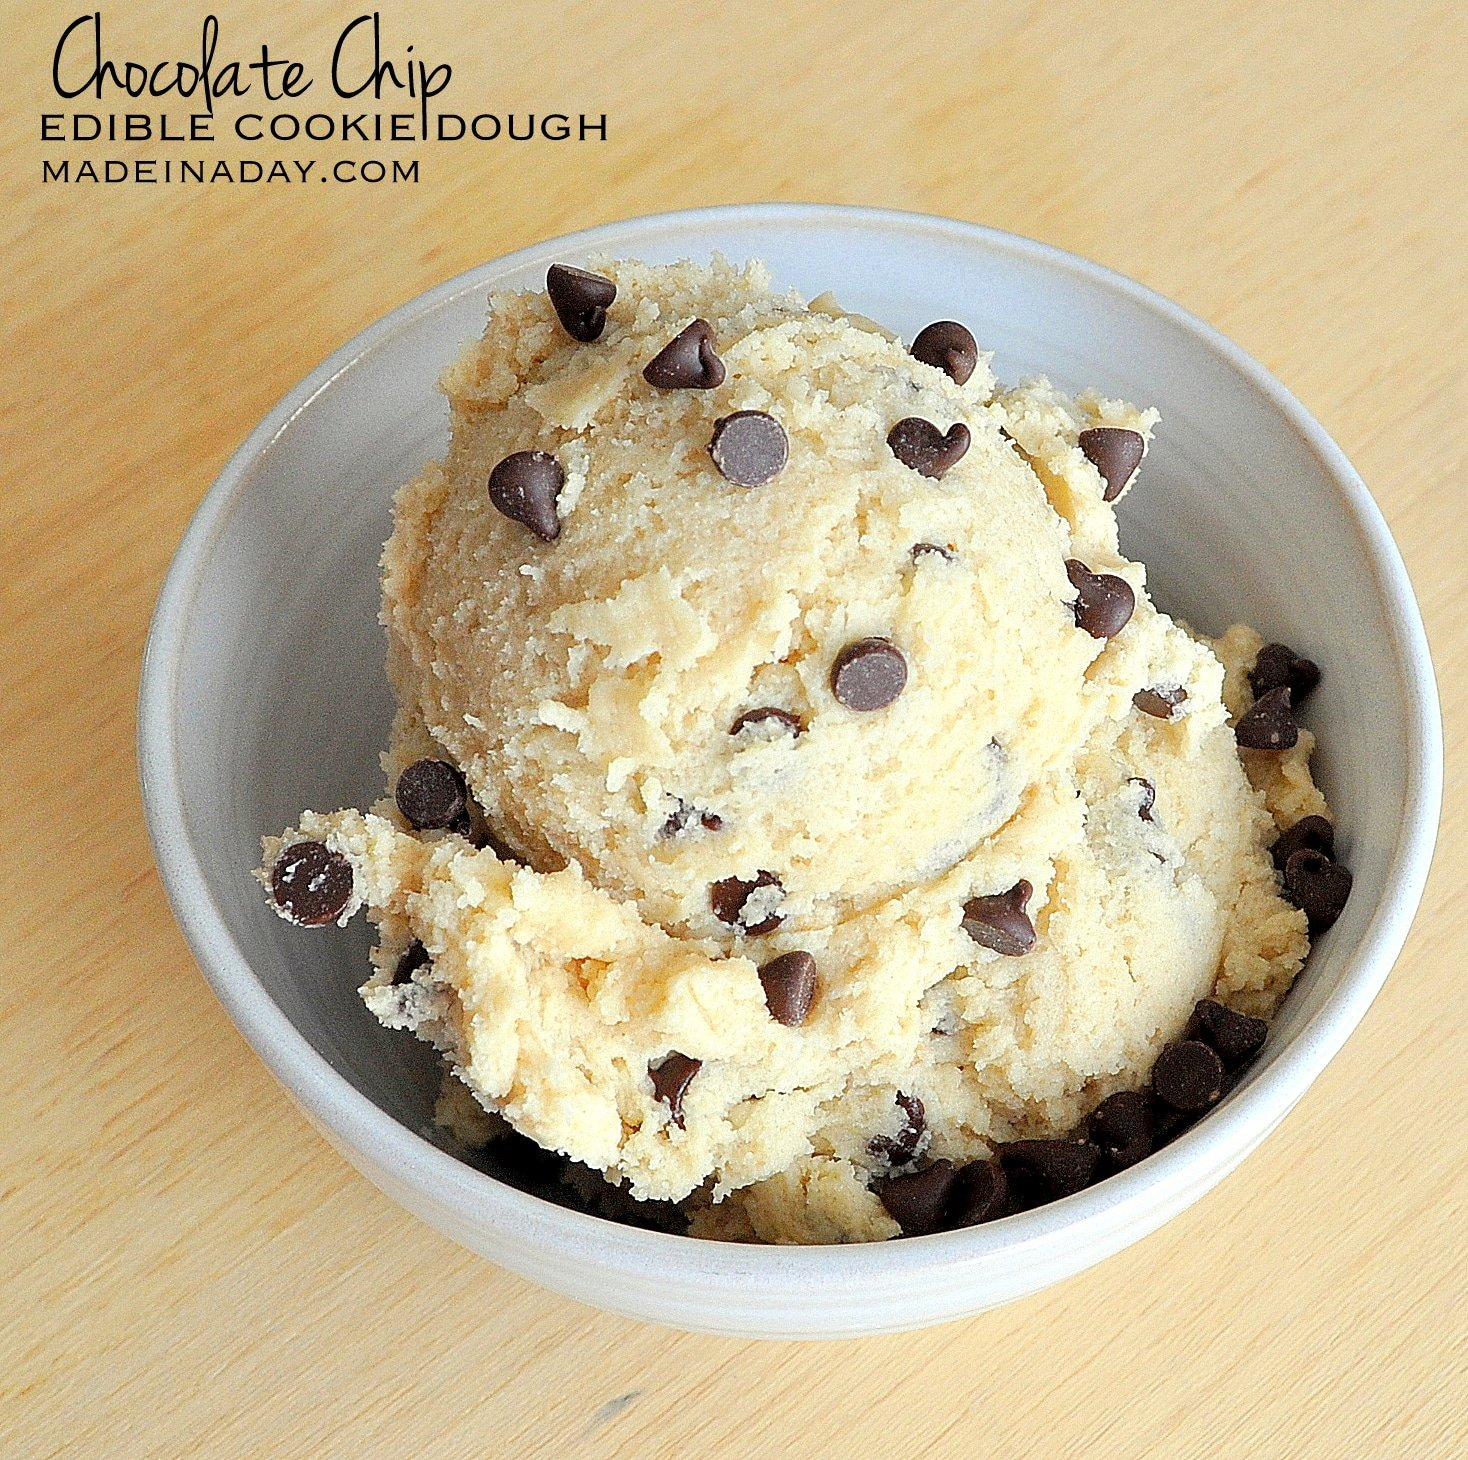 Chocolate Chip Edible Cookie Dough Recipe